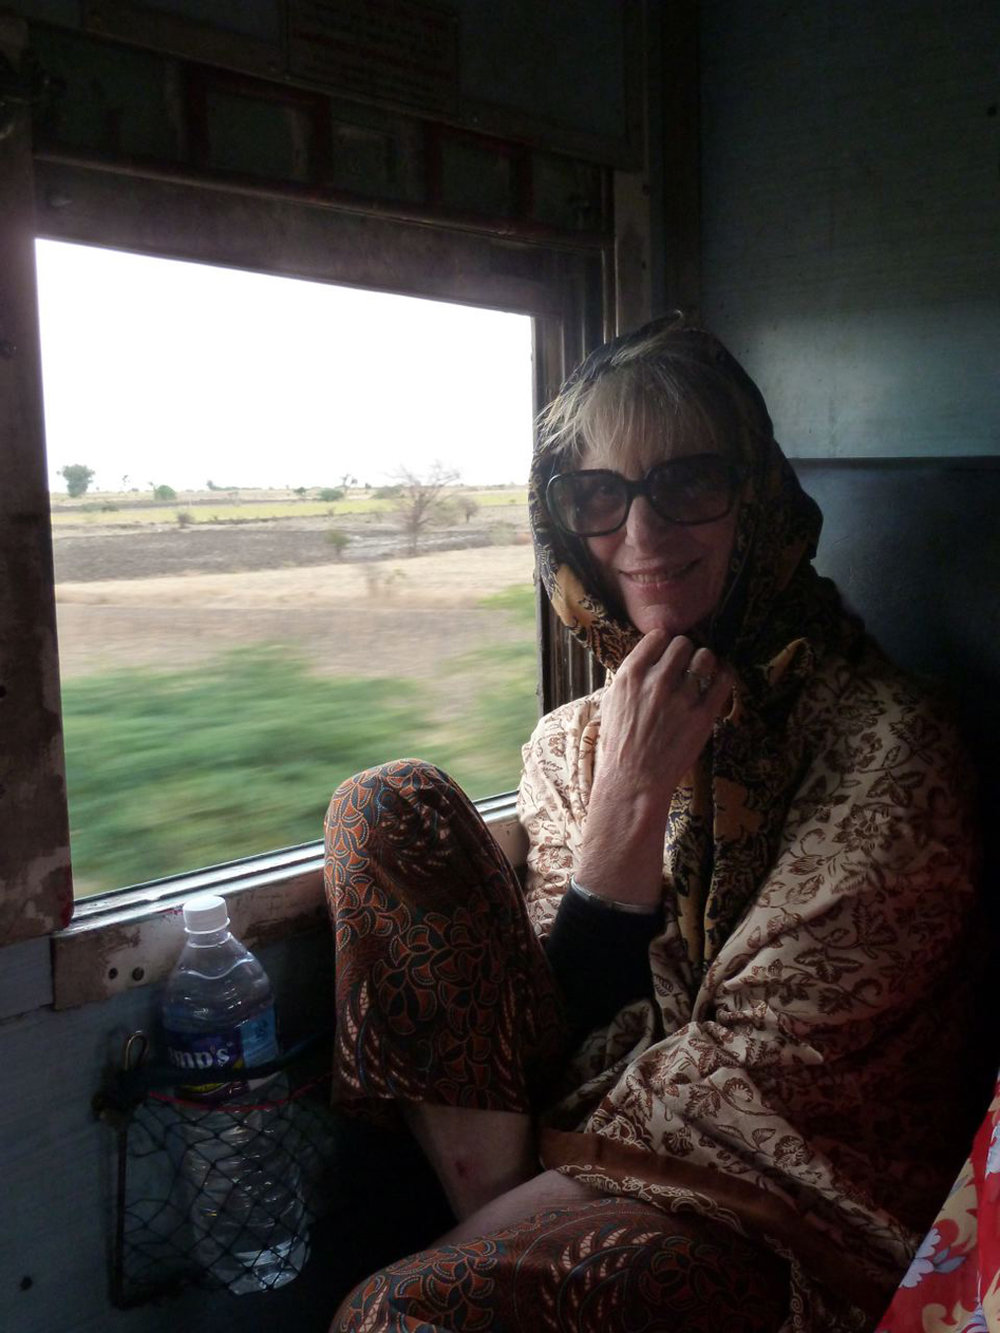 On a long train trip in India. I wrote for hours and hours on that train.